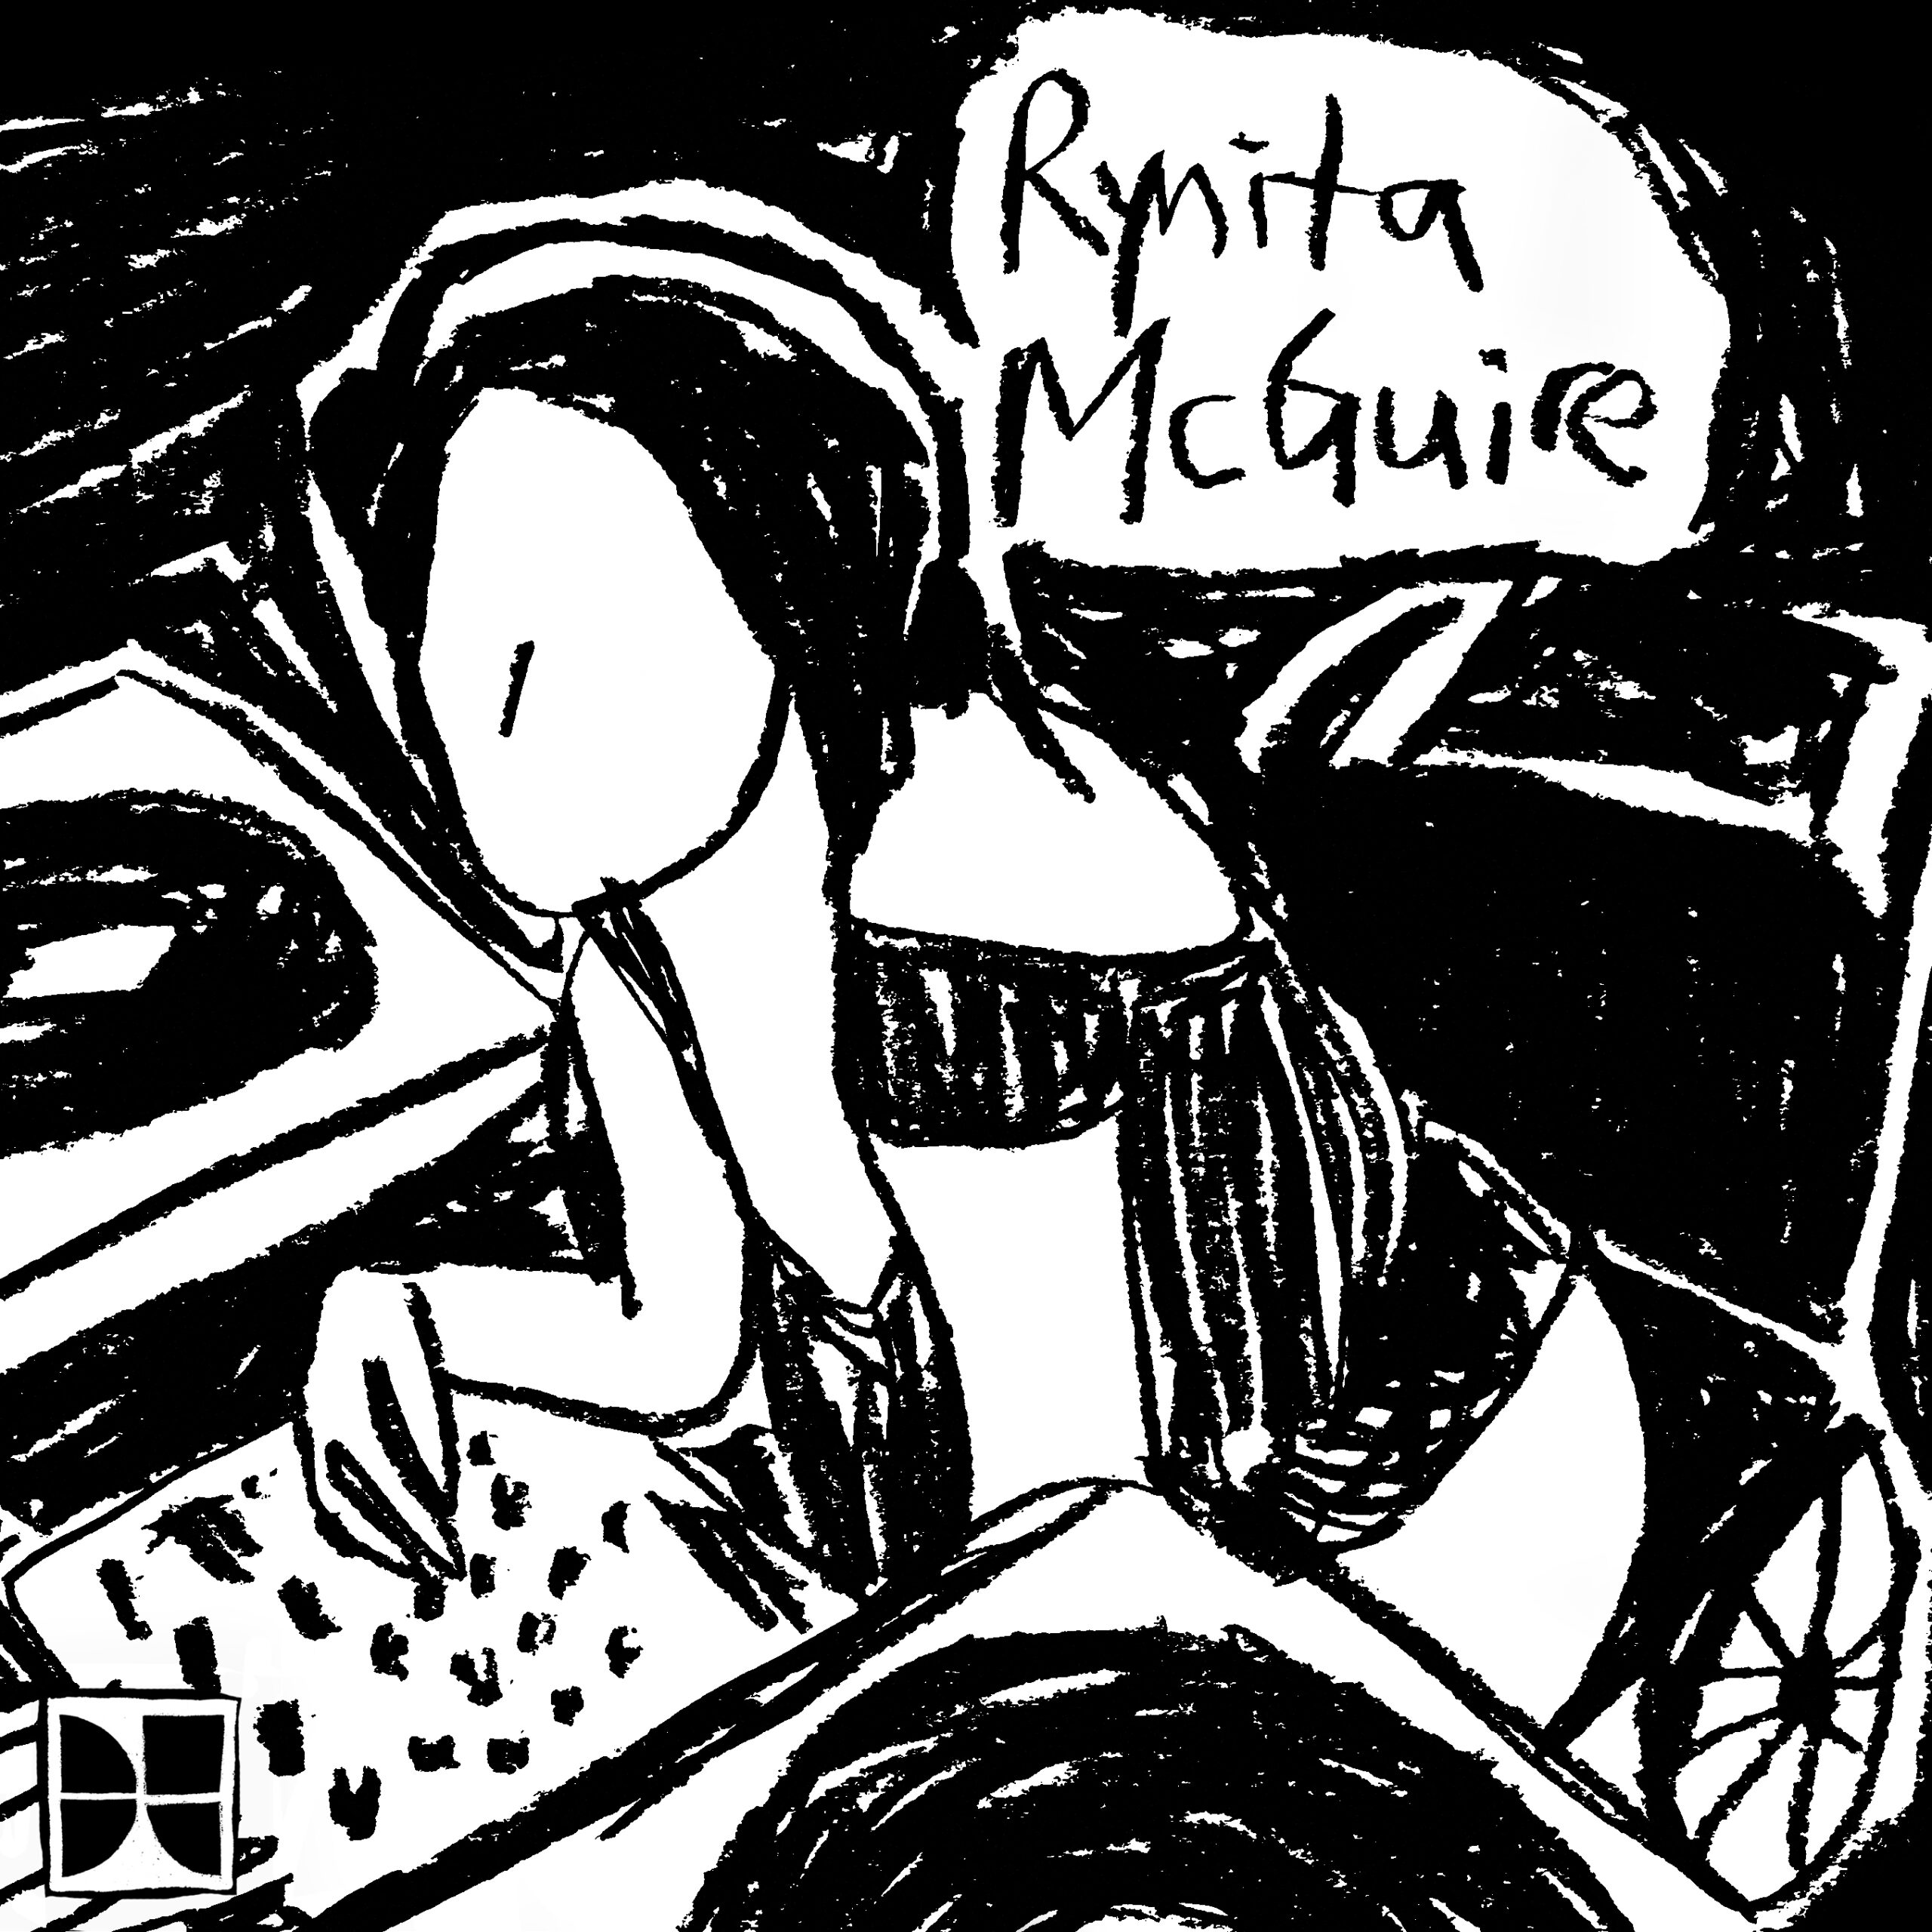 Black and white charcoal drawing of Rynita at her turntable with Rynita McGuire written in a white thought bubble in the upper right corner